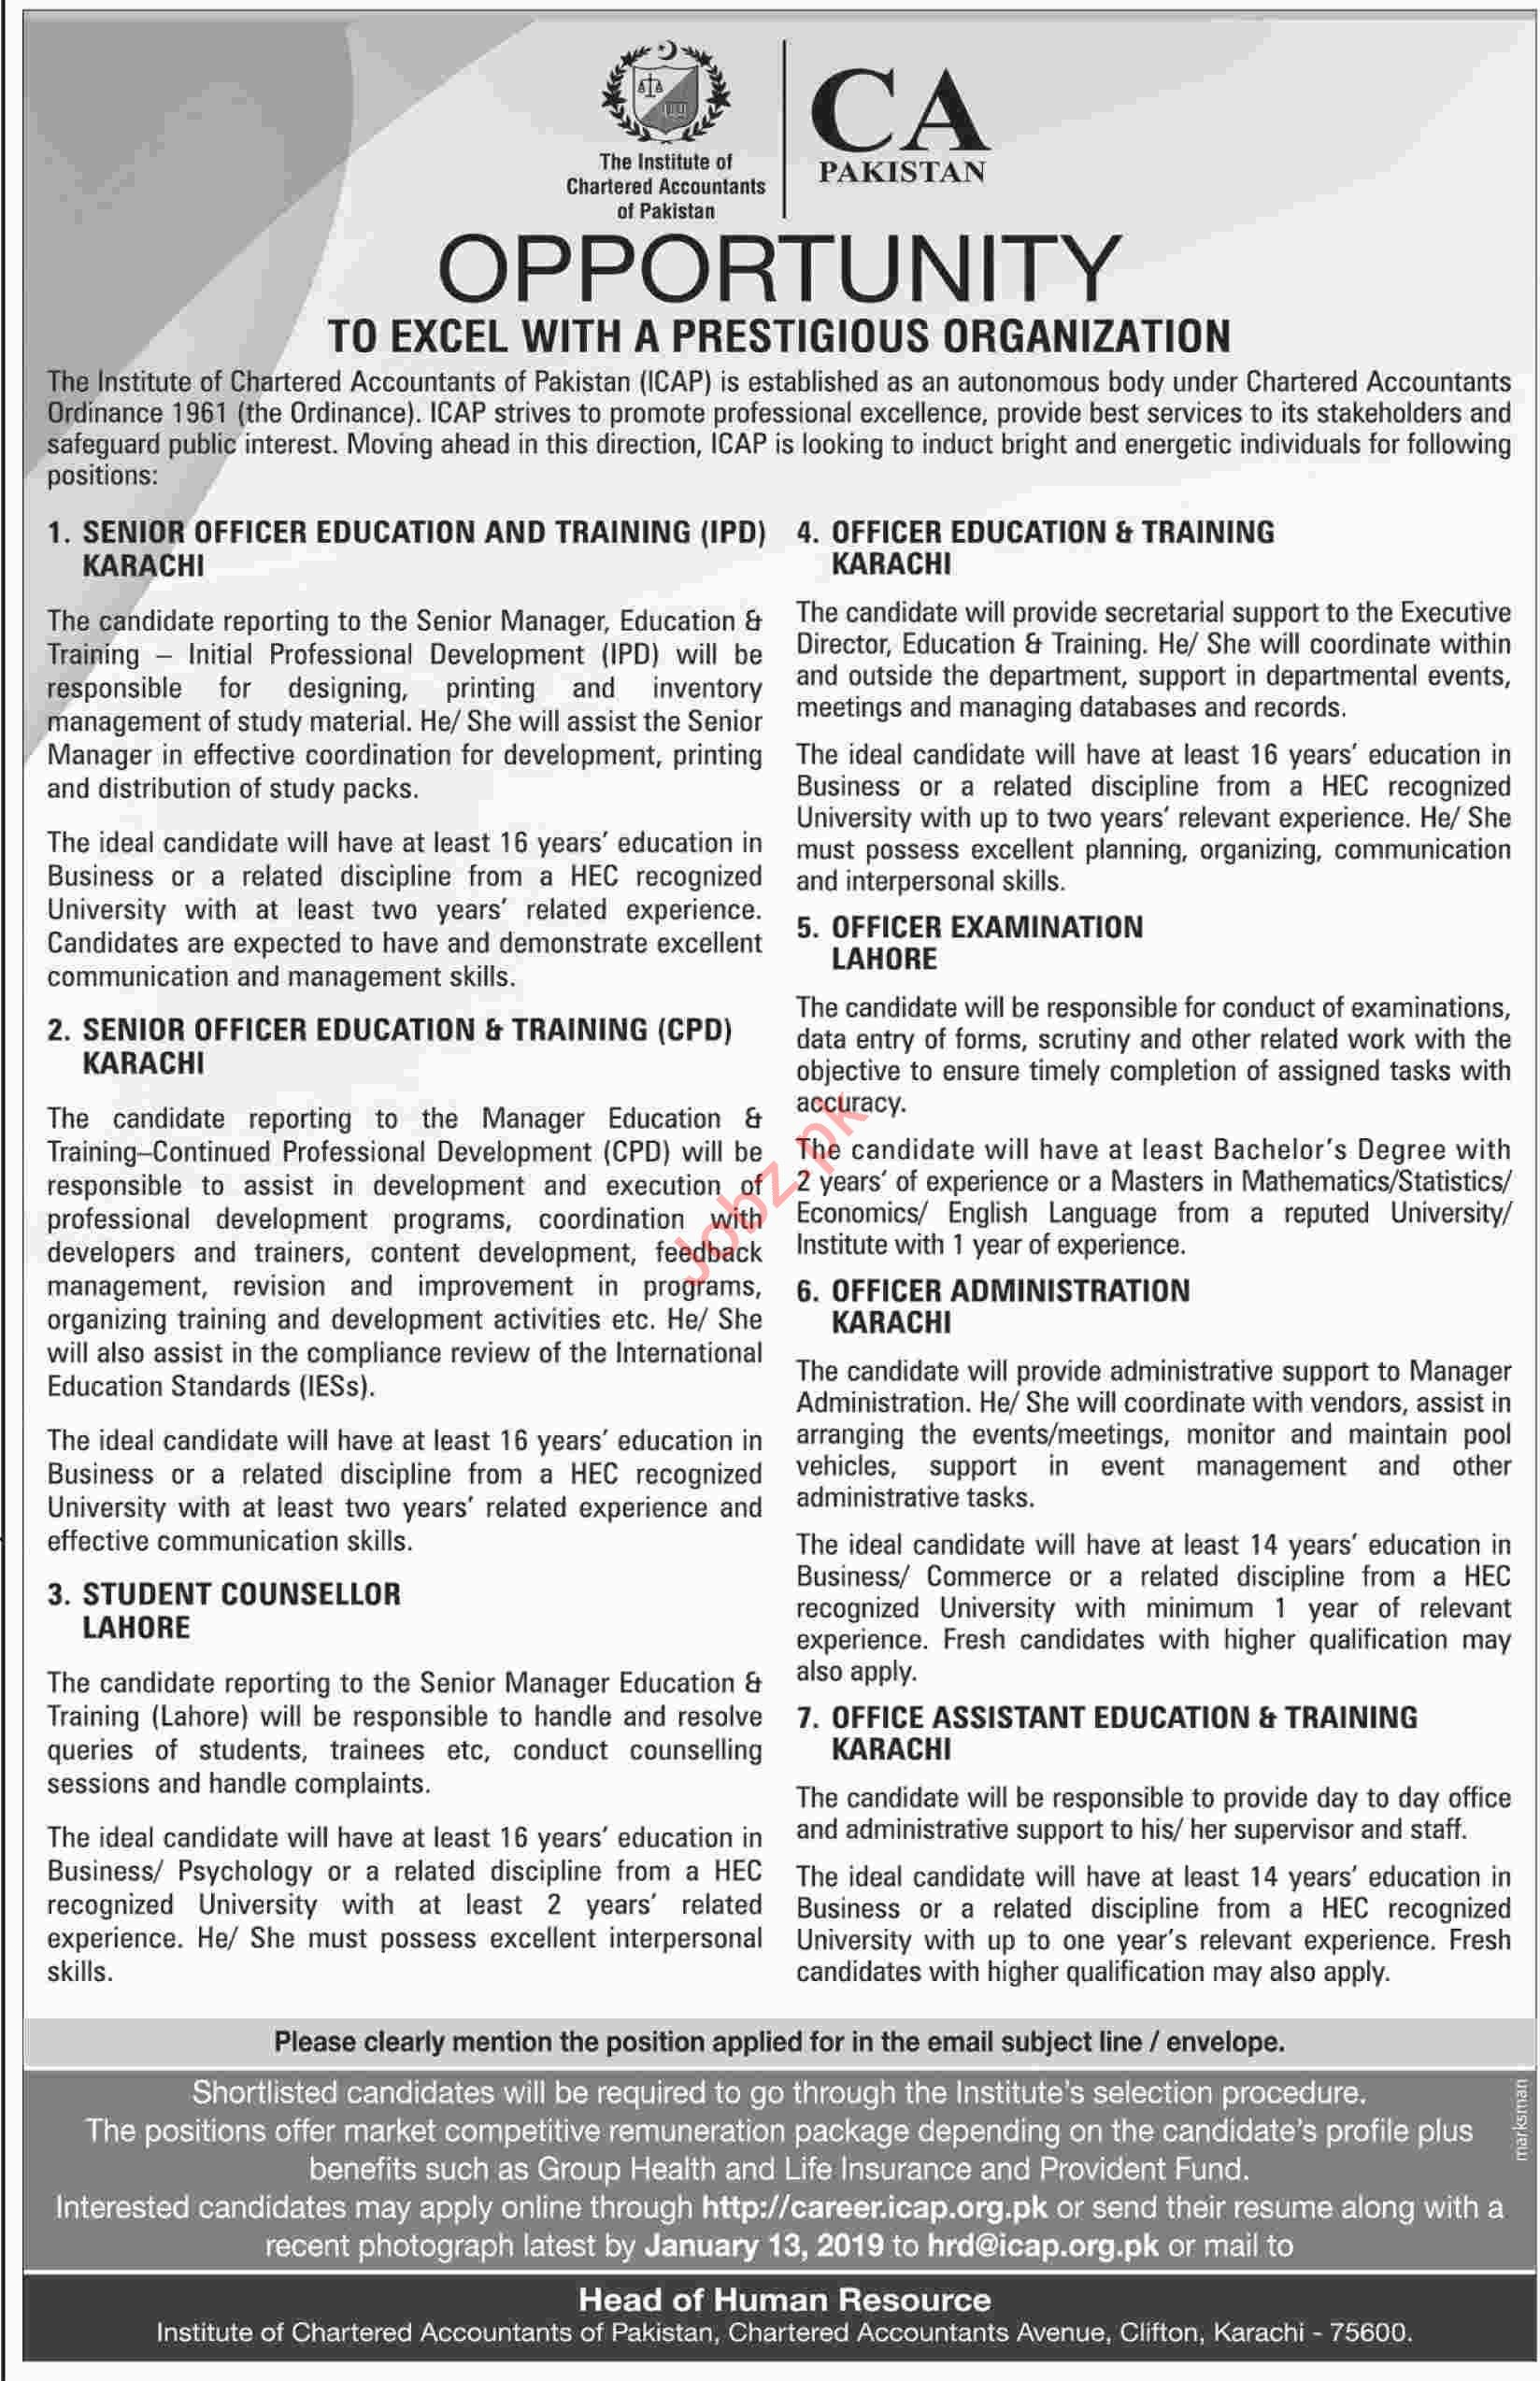 Senior Officer Education and Training Jobs at ICAP